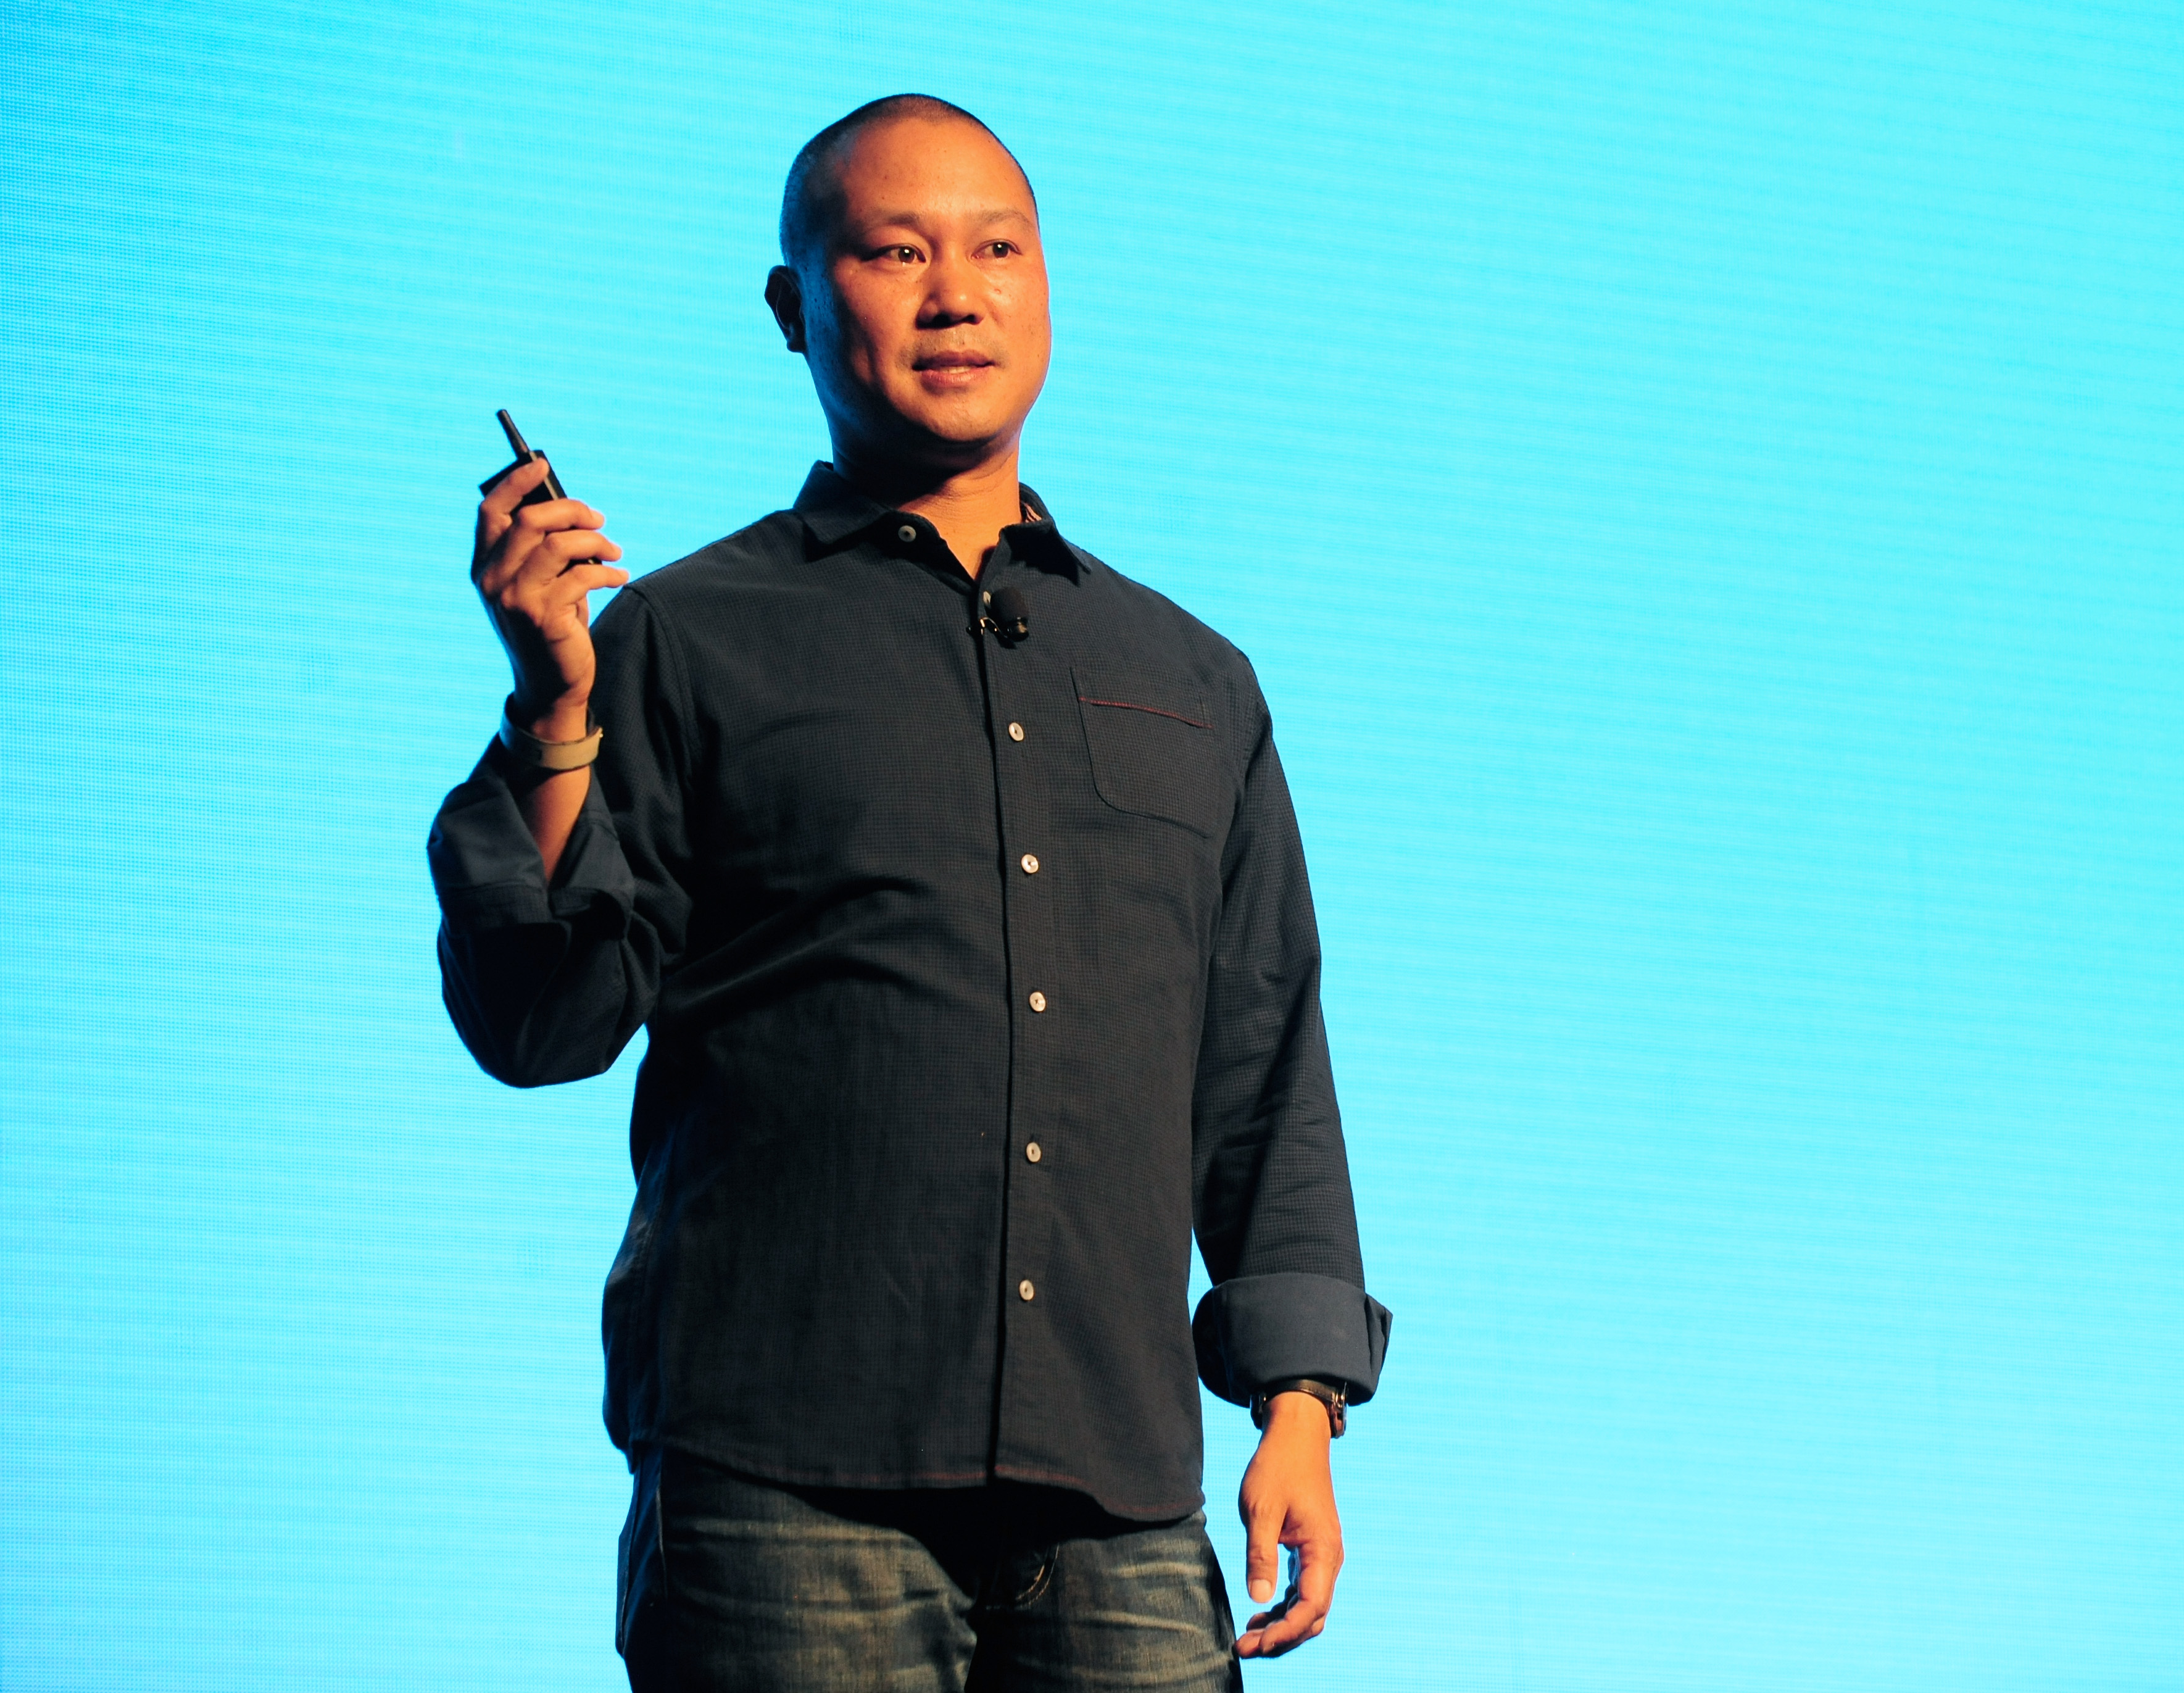 Former Zappos CEO Tony Hsieh